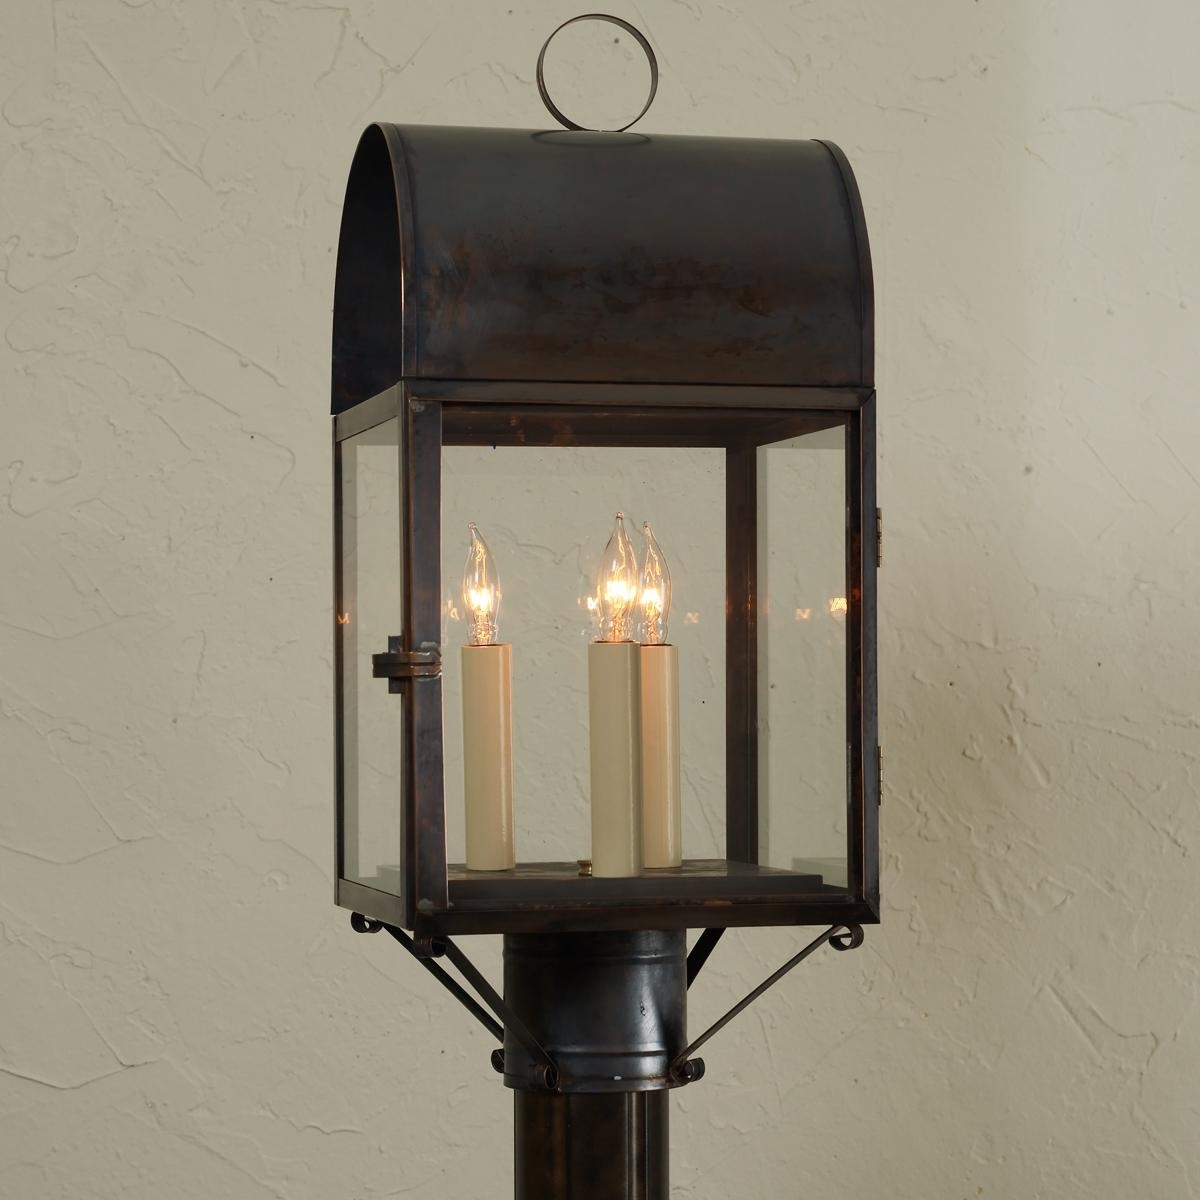 Latest Colonial Outdoor Lamp Posts All About House Design : Decorative Pertaining To Outdoor Lanterns For Posts (View 10 of 20)